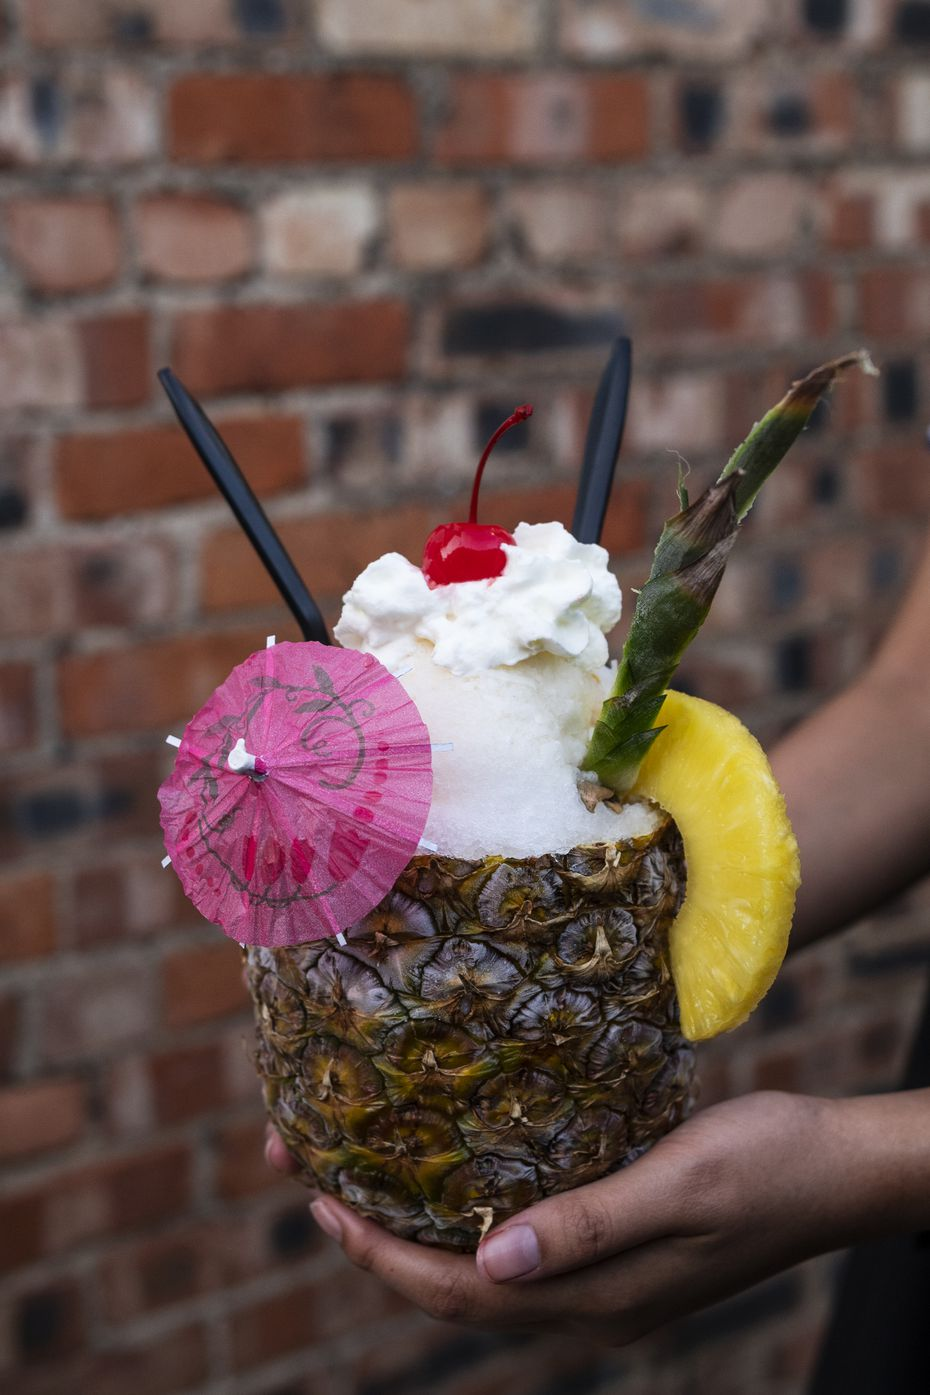 The Pina Alotta, made with house made pineapple and coconut syrup, whipped cream and vanilla ice cream, is one of the ice-cold creations at Shaved Balls of Ice in Deep Ellum.